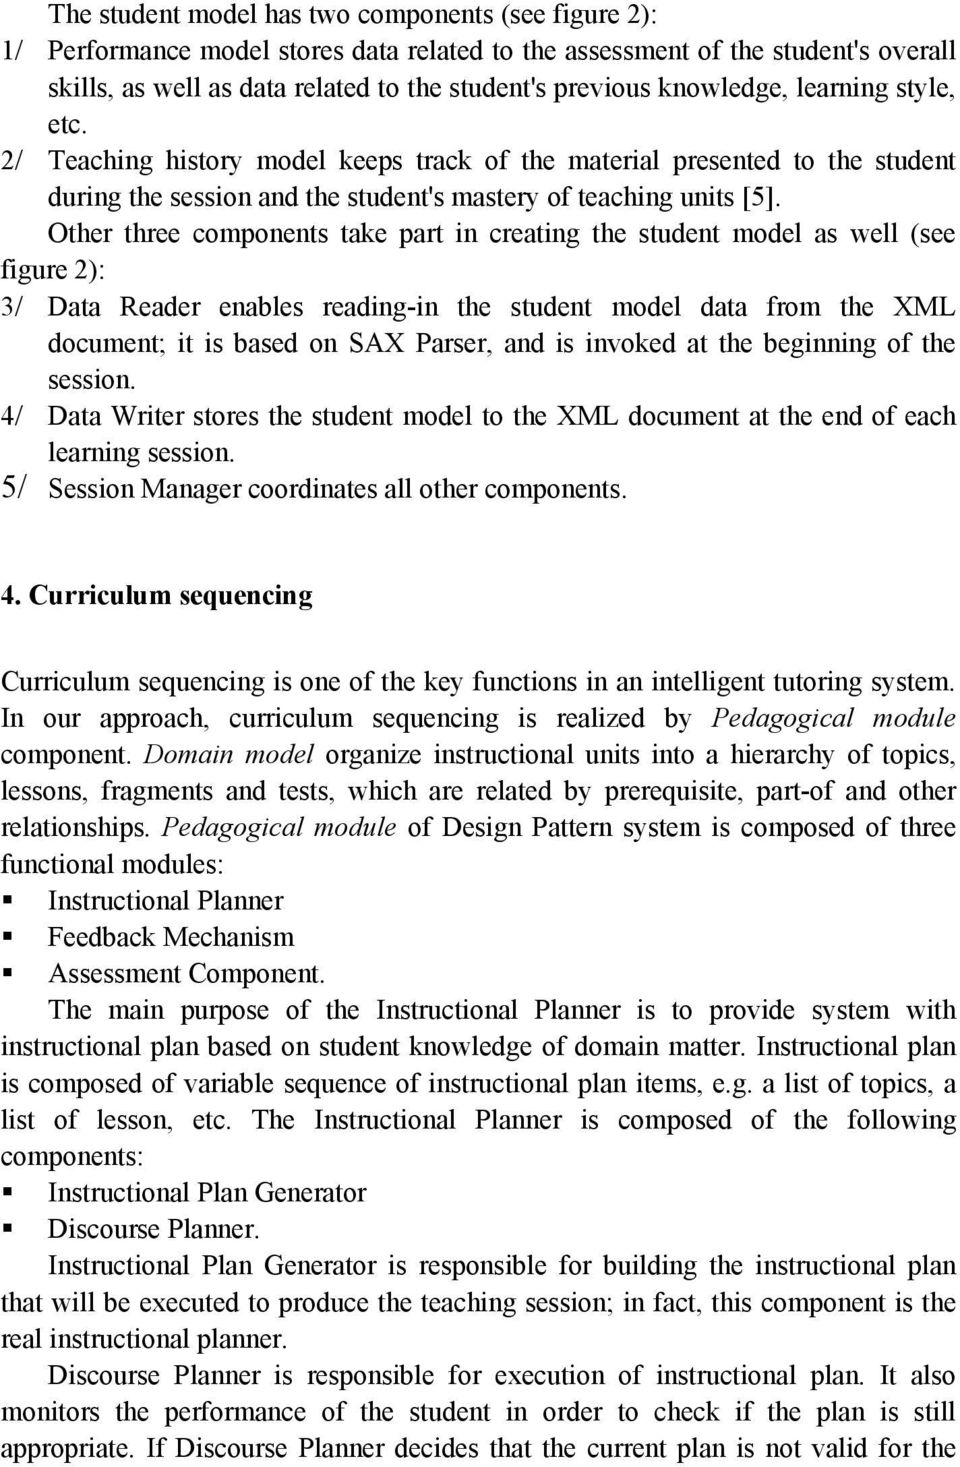 Other three components take part in creating the student model as well (see figure 2): 3/ Data Reader enables reading-in the student model data from the XML document; it is based on SAX Parser, and